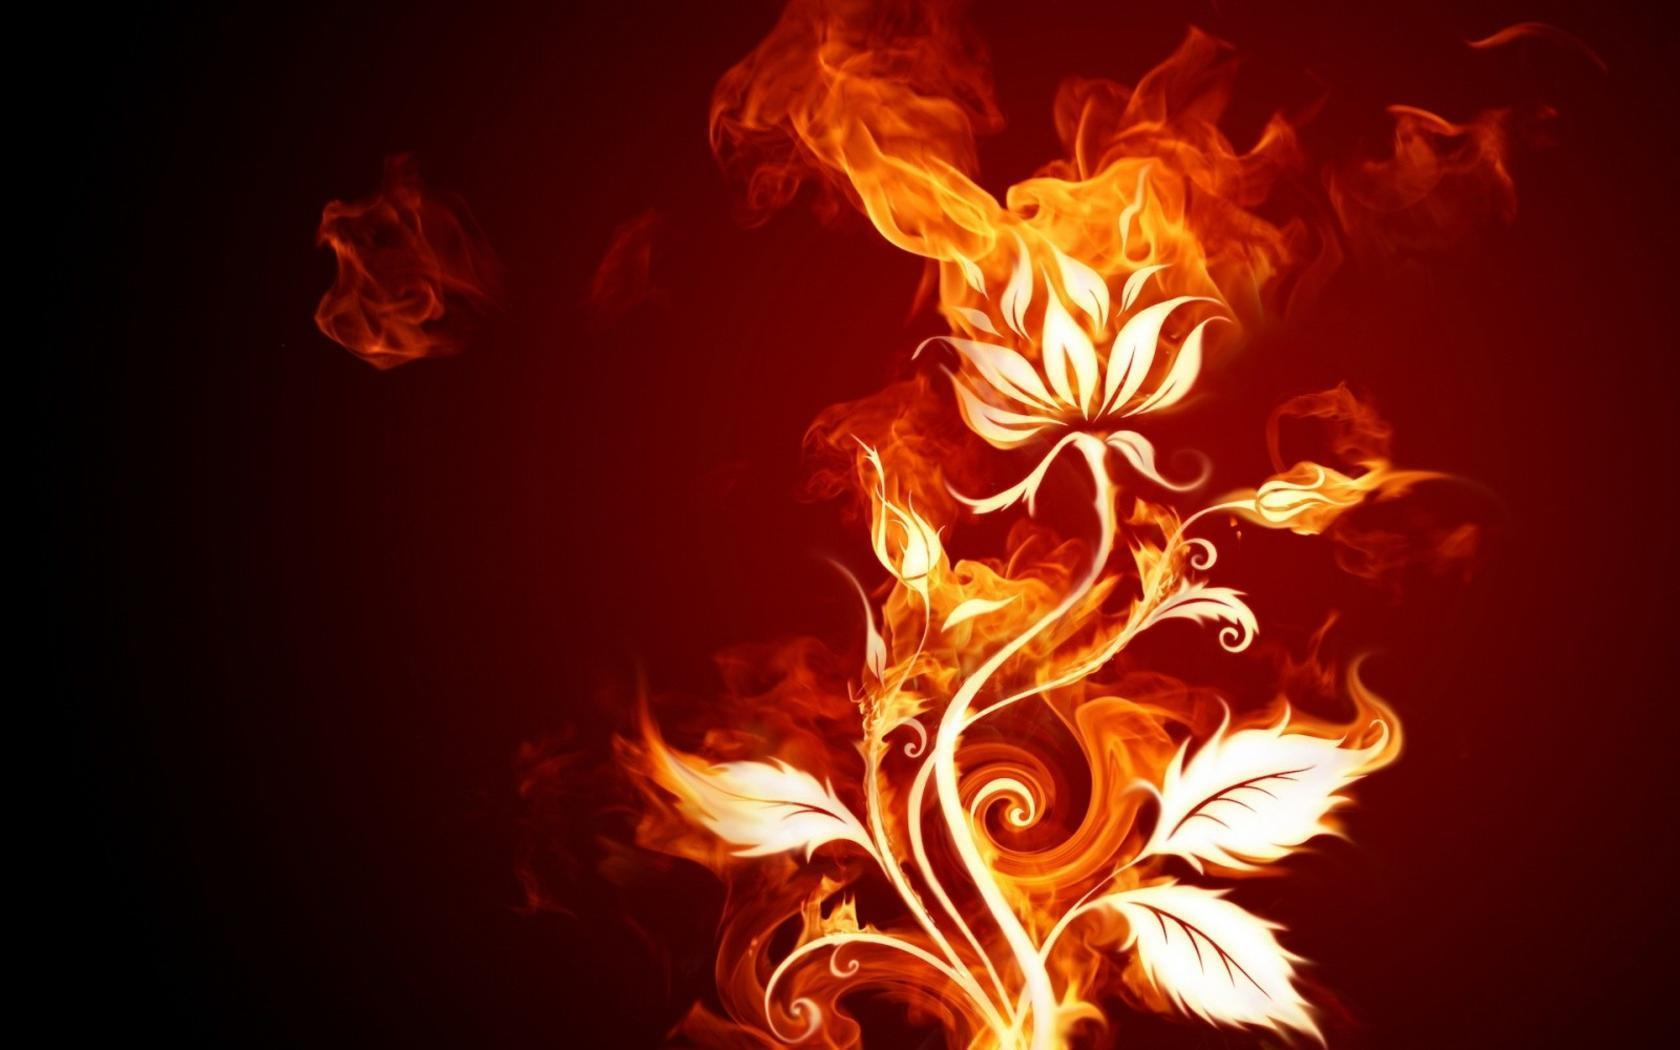 flaming fireplace wallpaper - photo #15